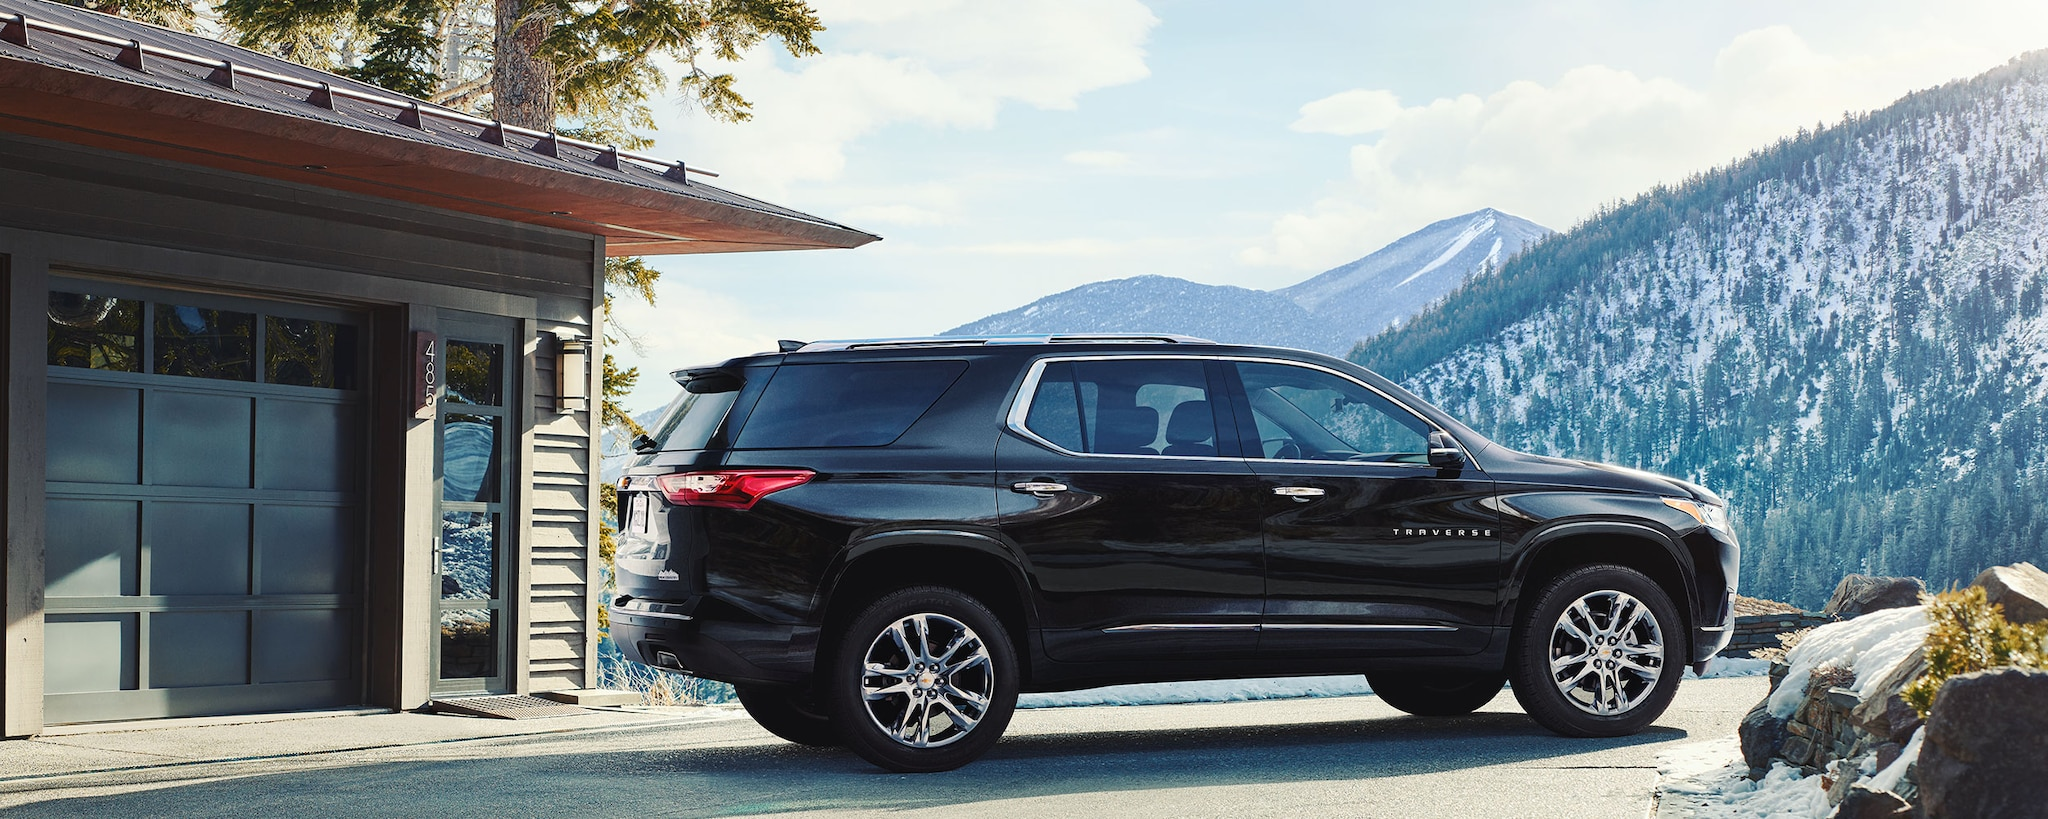 All-New Chevrolet Traverse Midsize SUV